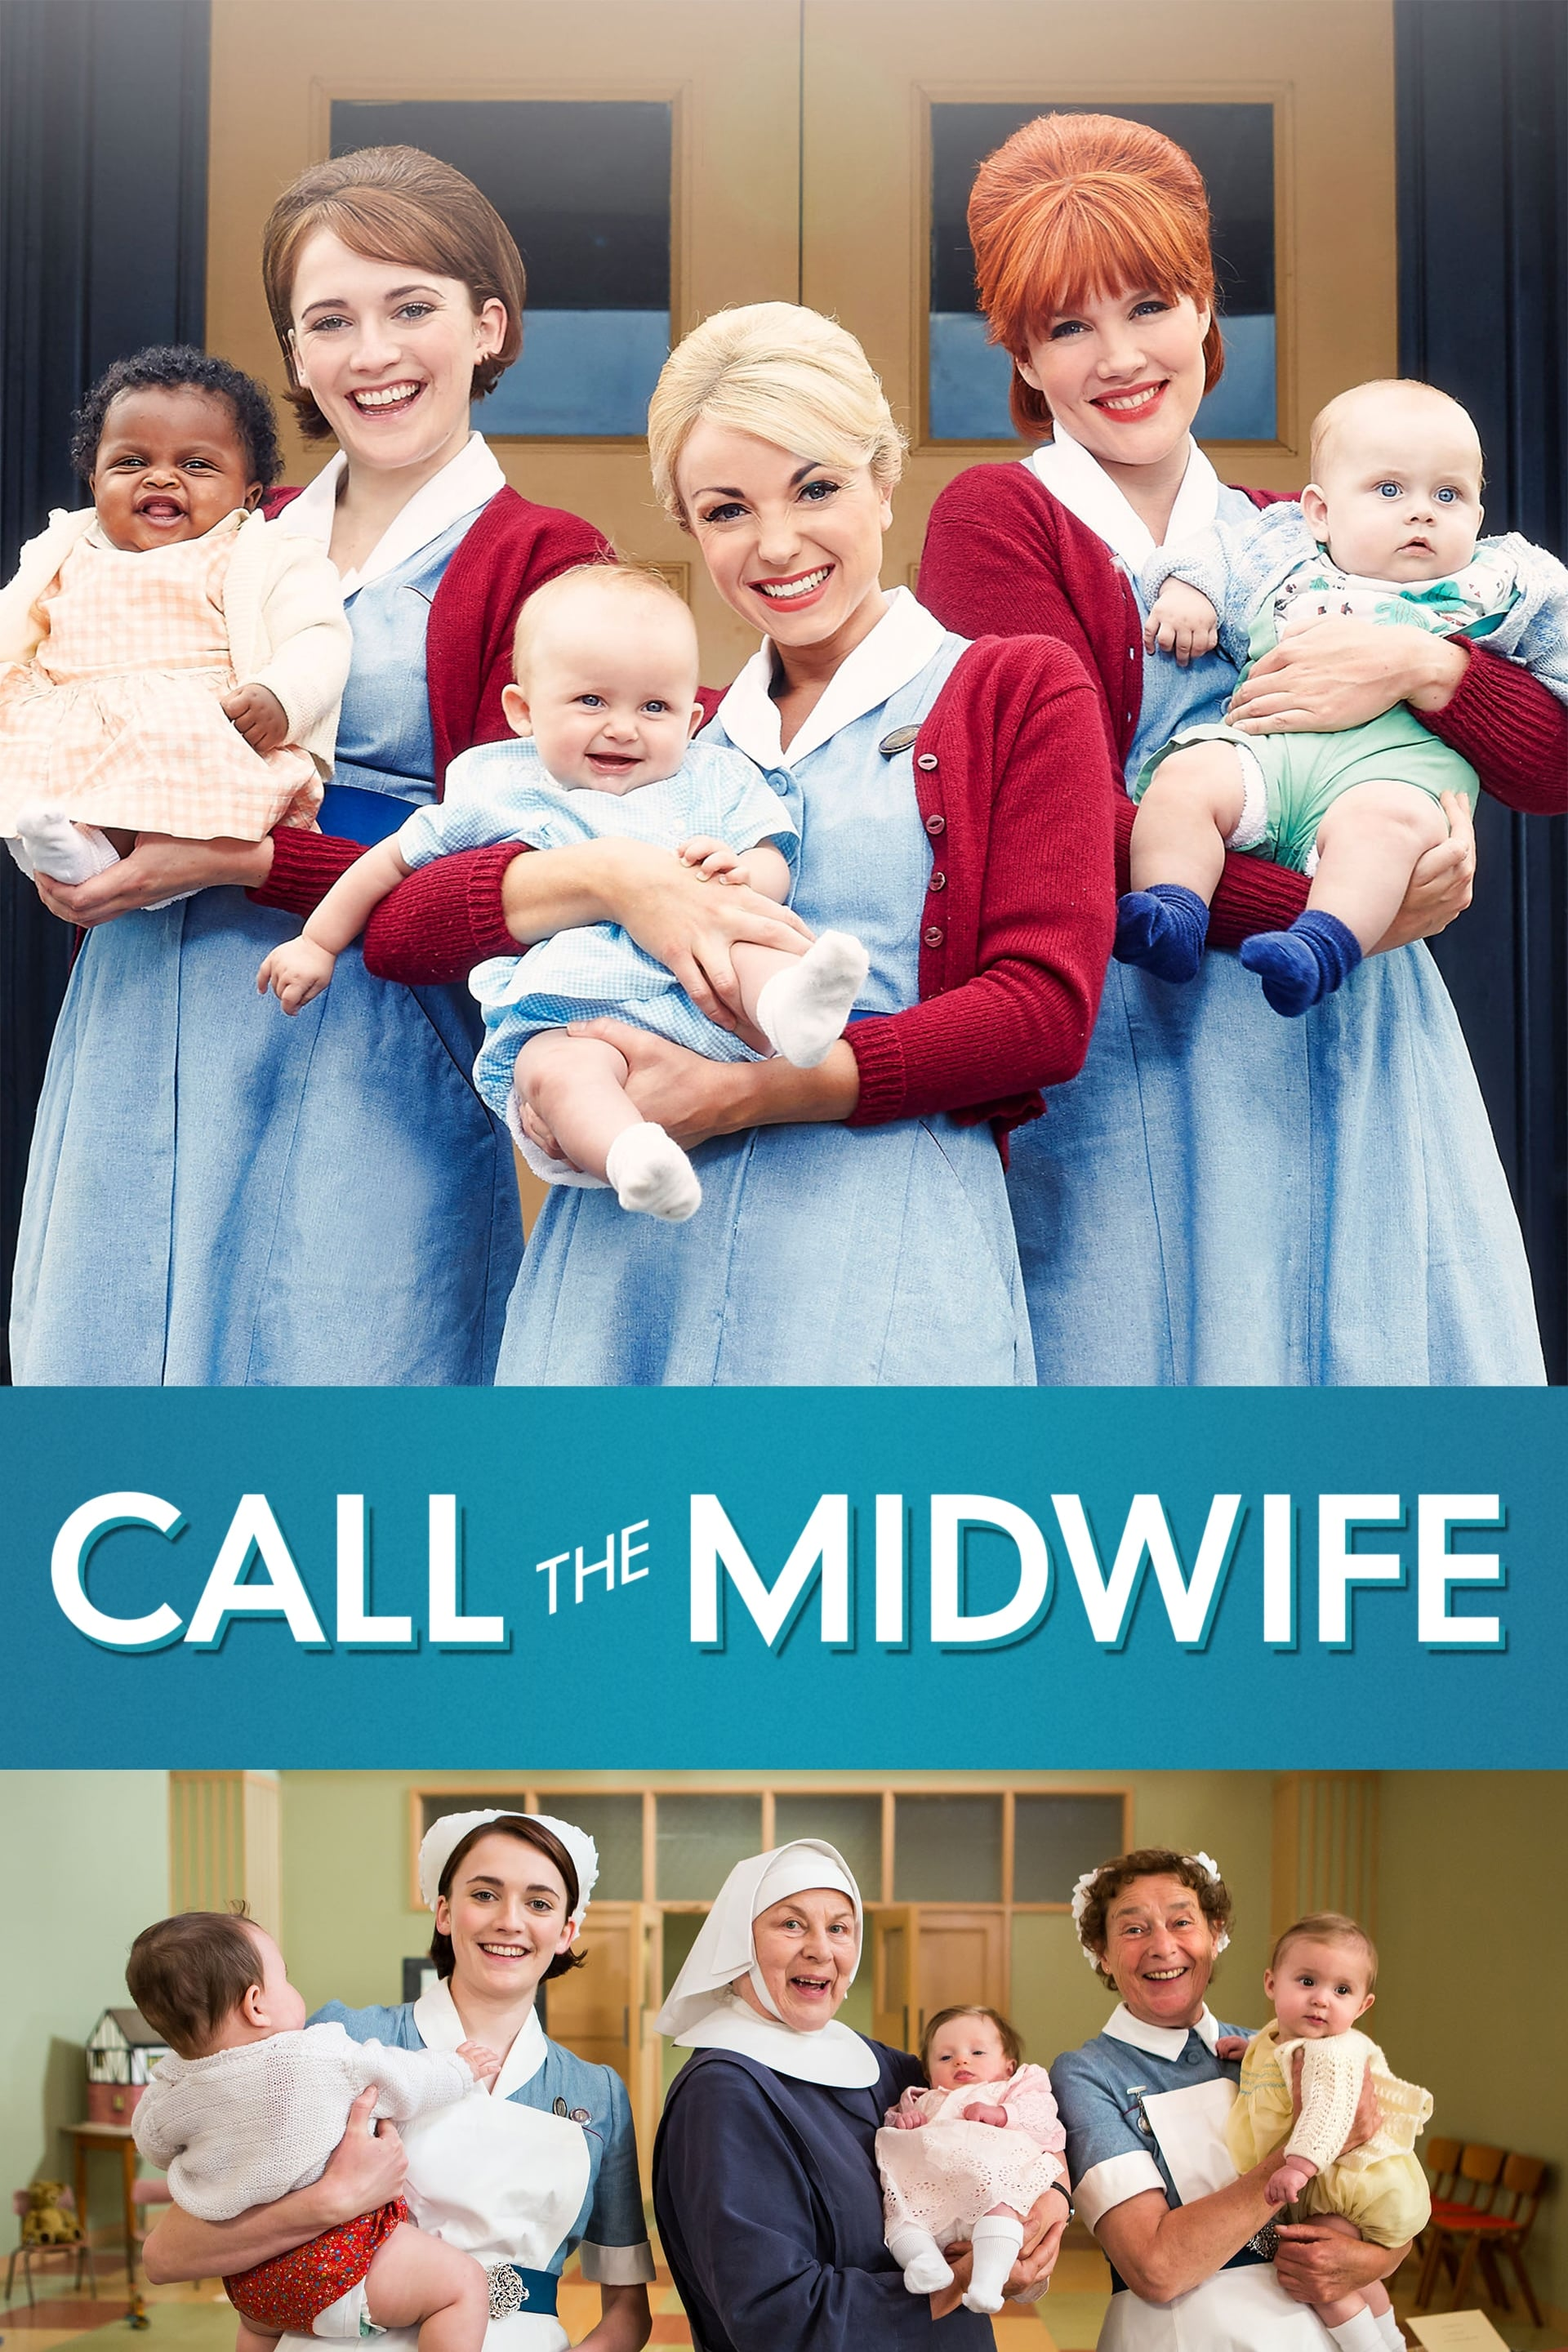 image for Call the Midwife